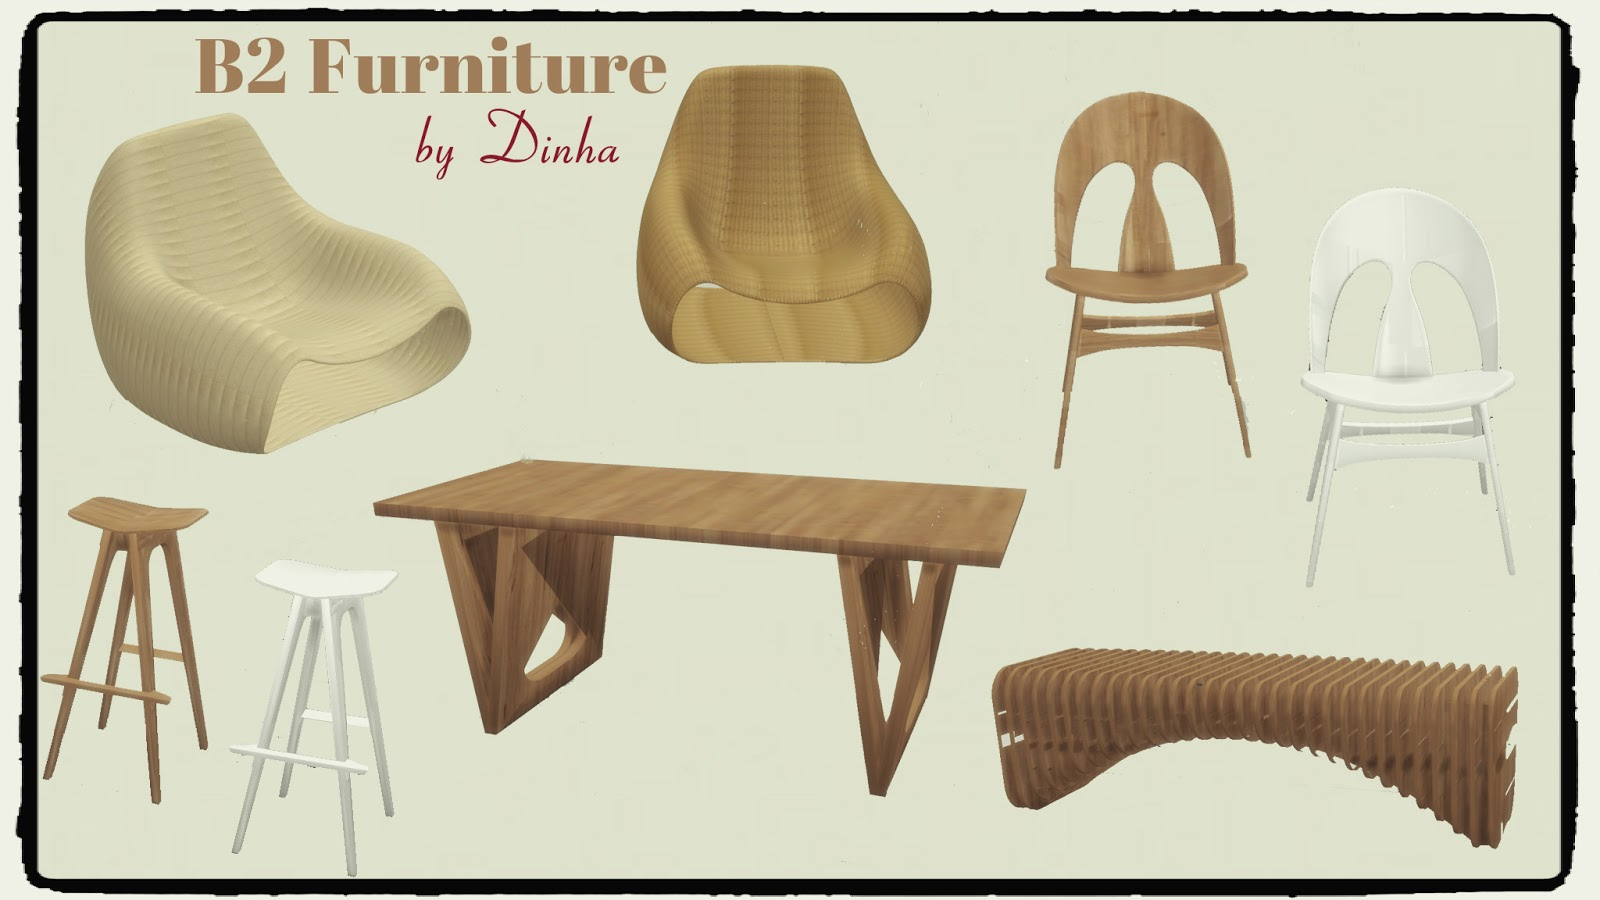 Sims 4 b2 furniture living dinning room dinha for 3 star living room chair sims